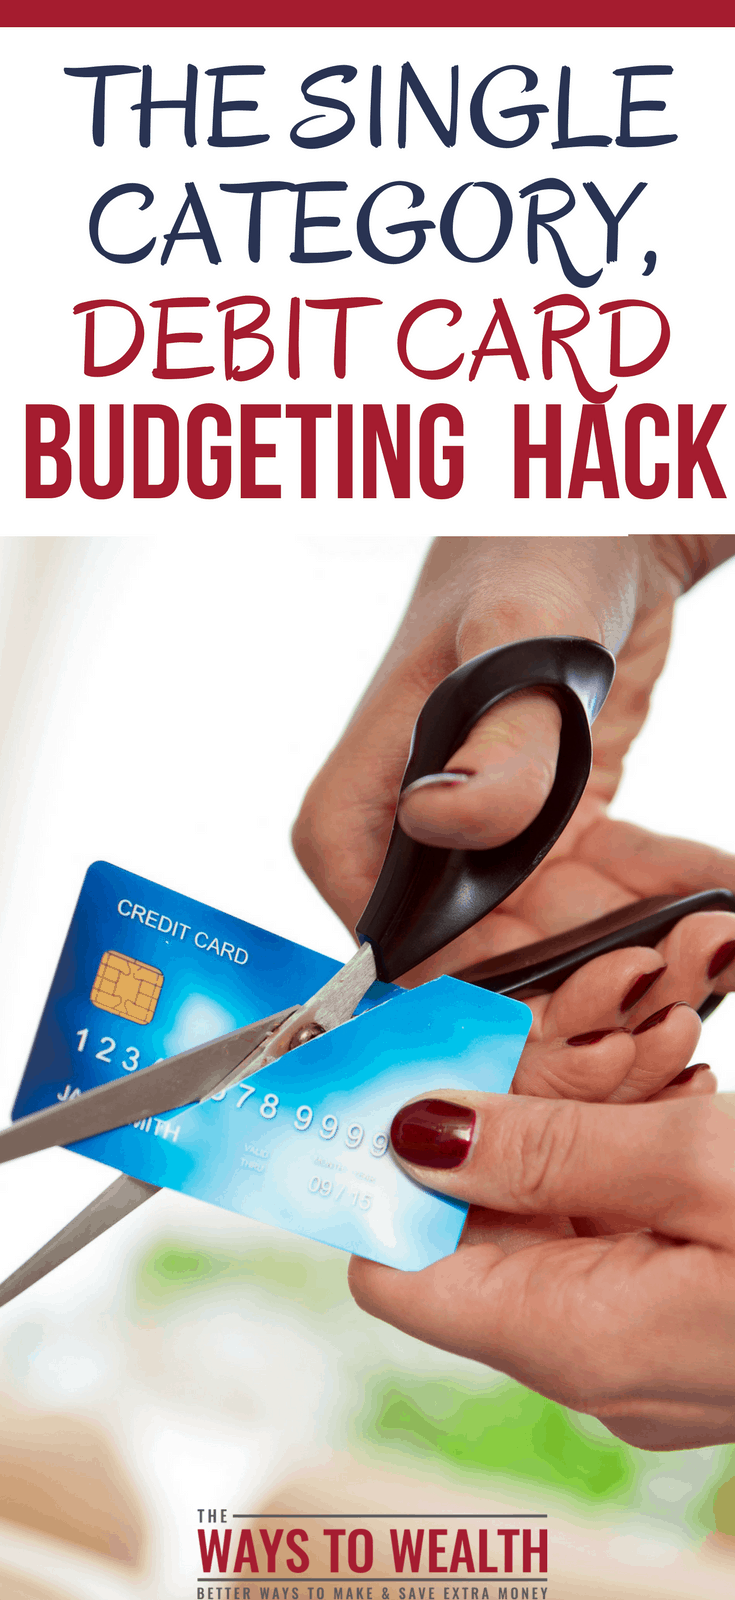 The Single Category, Debit Card Budgeting HackTry the single category, budgeting hack to lower your monthly expenses.  A sponsored post written by me on behalf of Green Dot #sponsoredpost